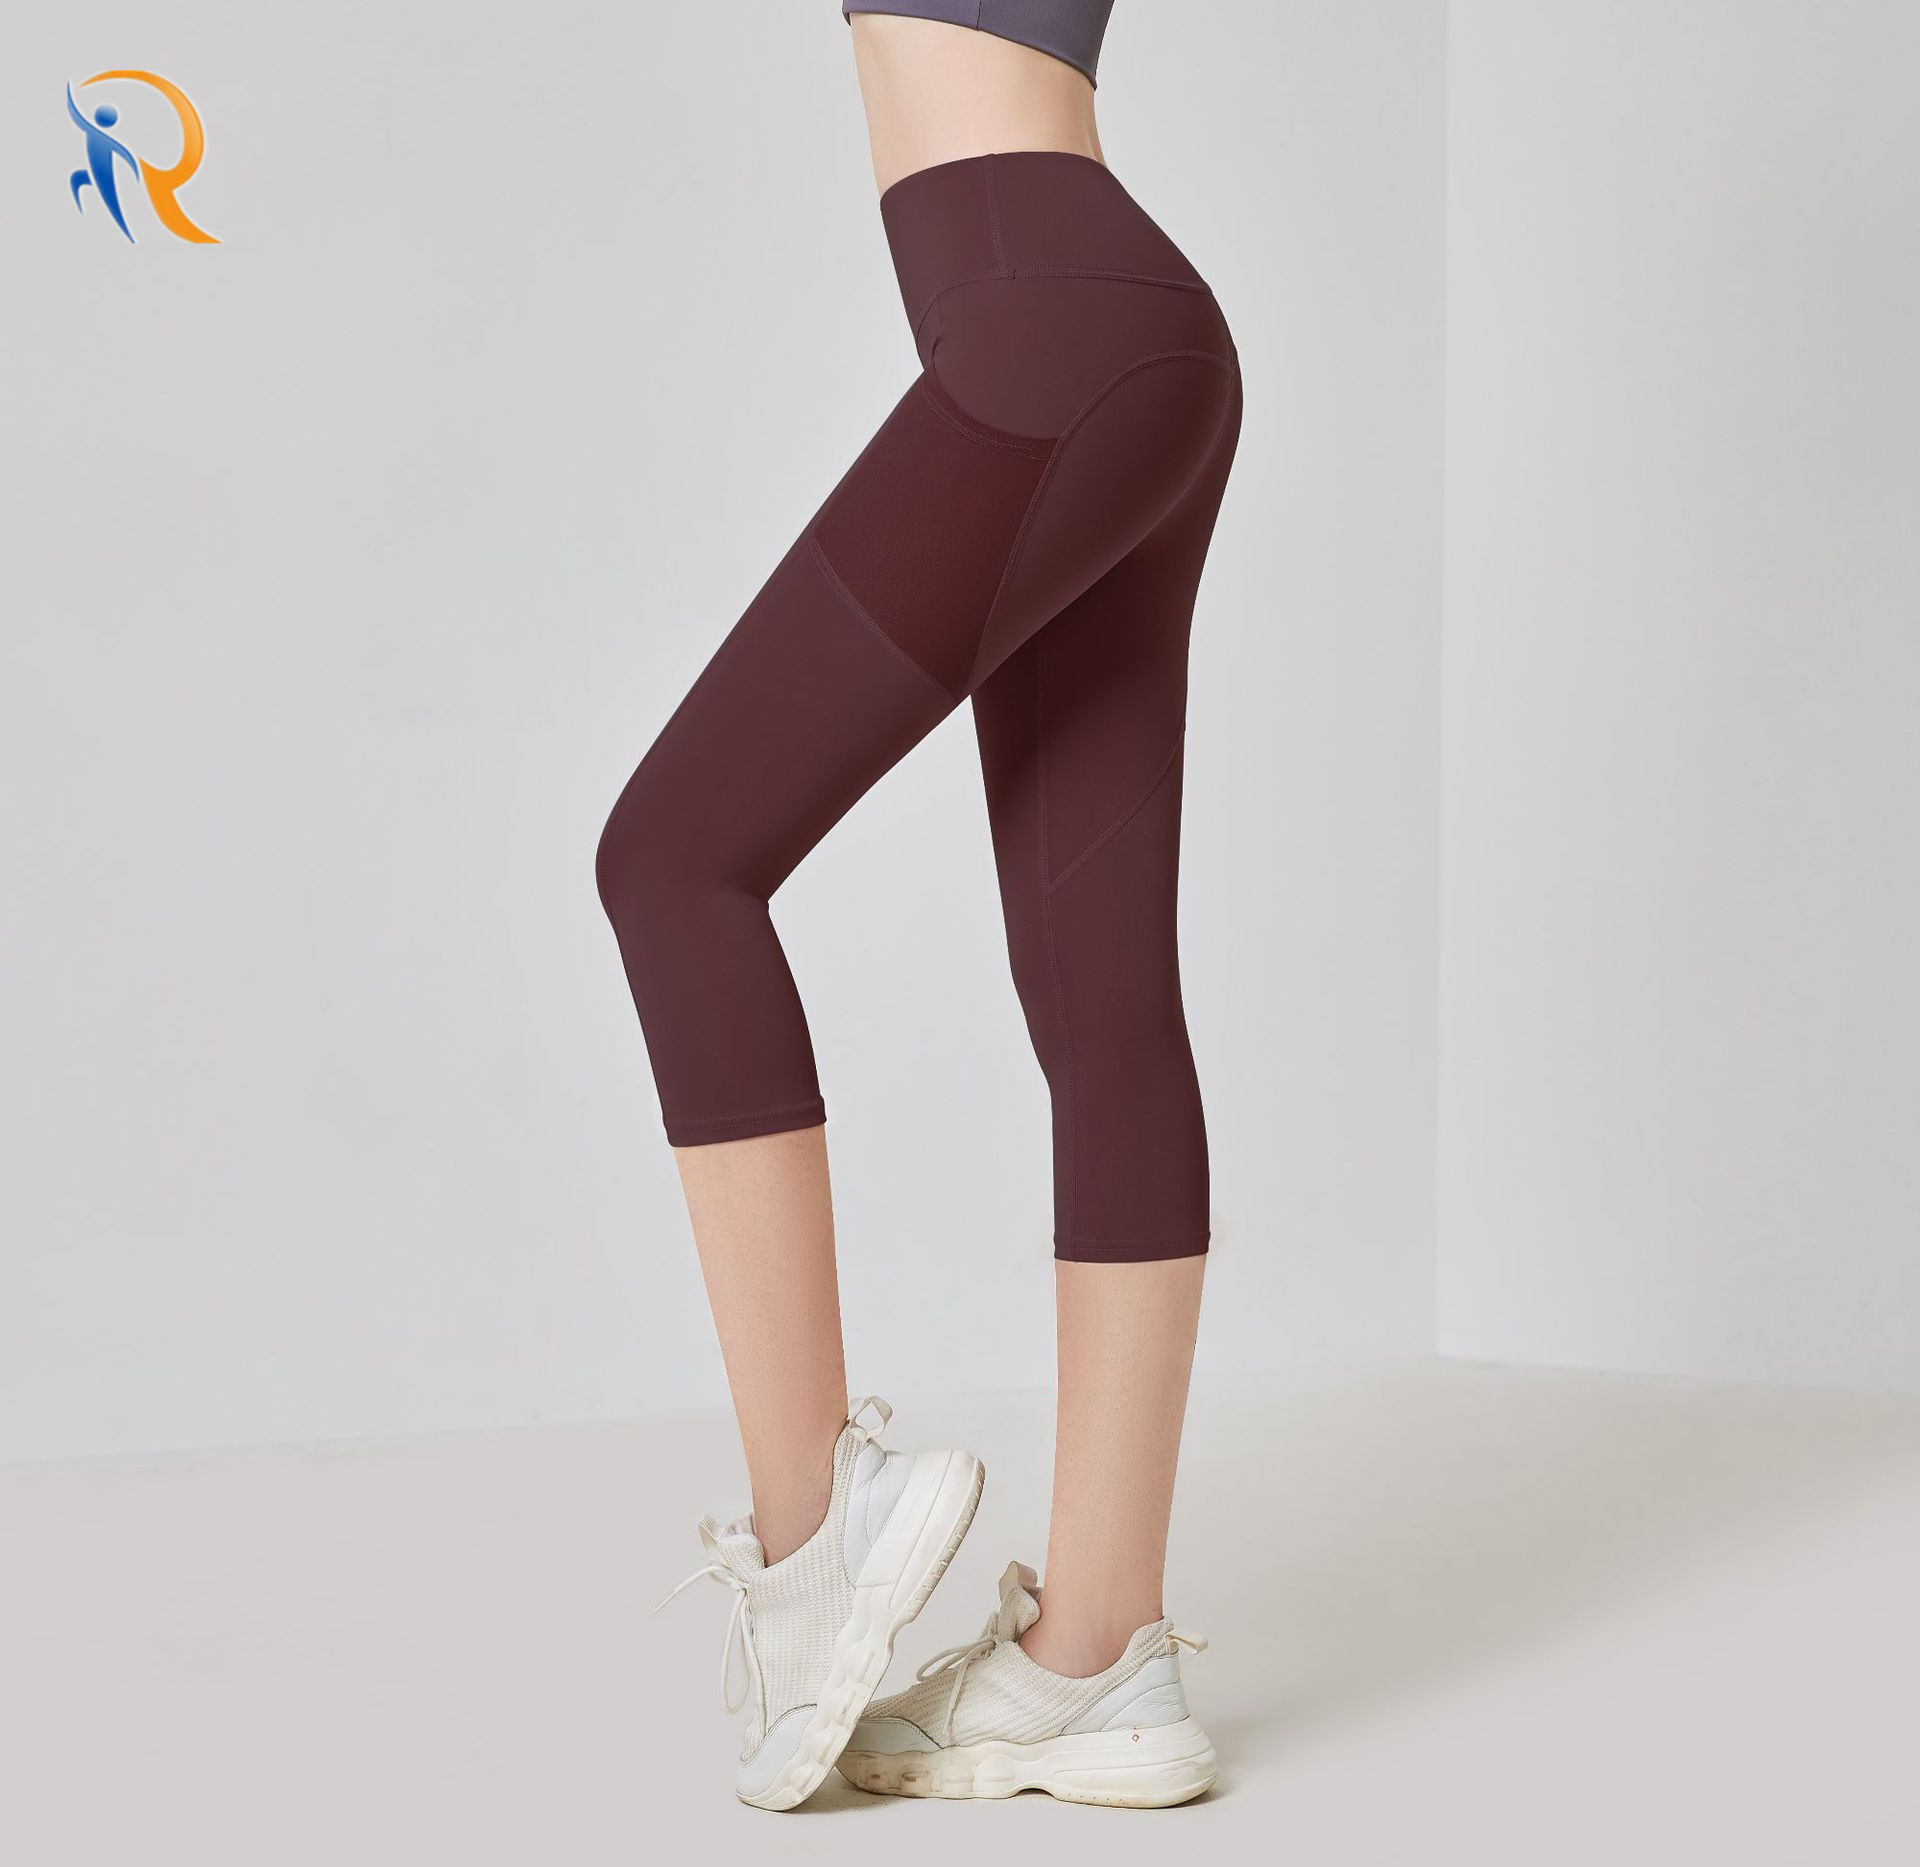 product-Ruiteng-Side Pockets Cropped Yoga Pants Women High Waist Gym Fitness Pants Sports Tights Cap